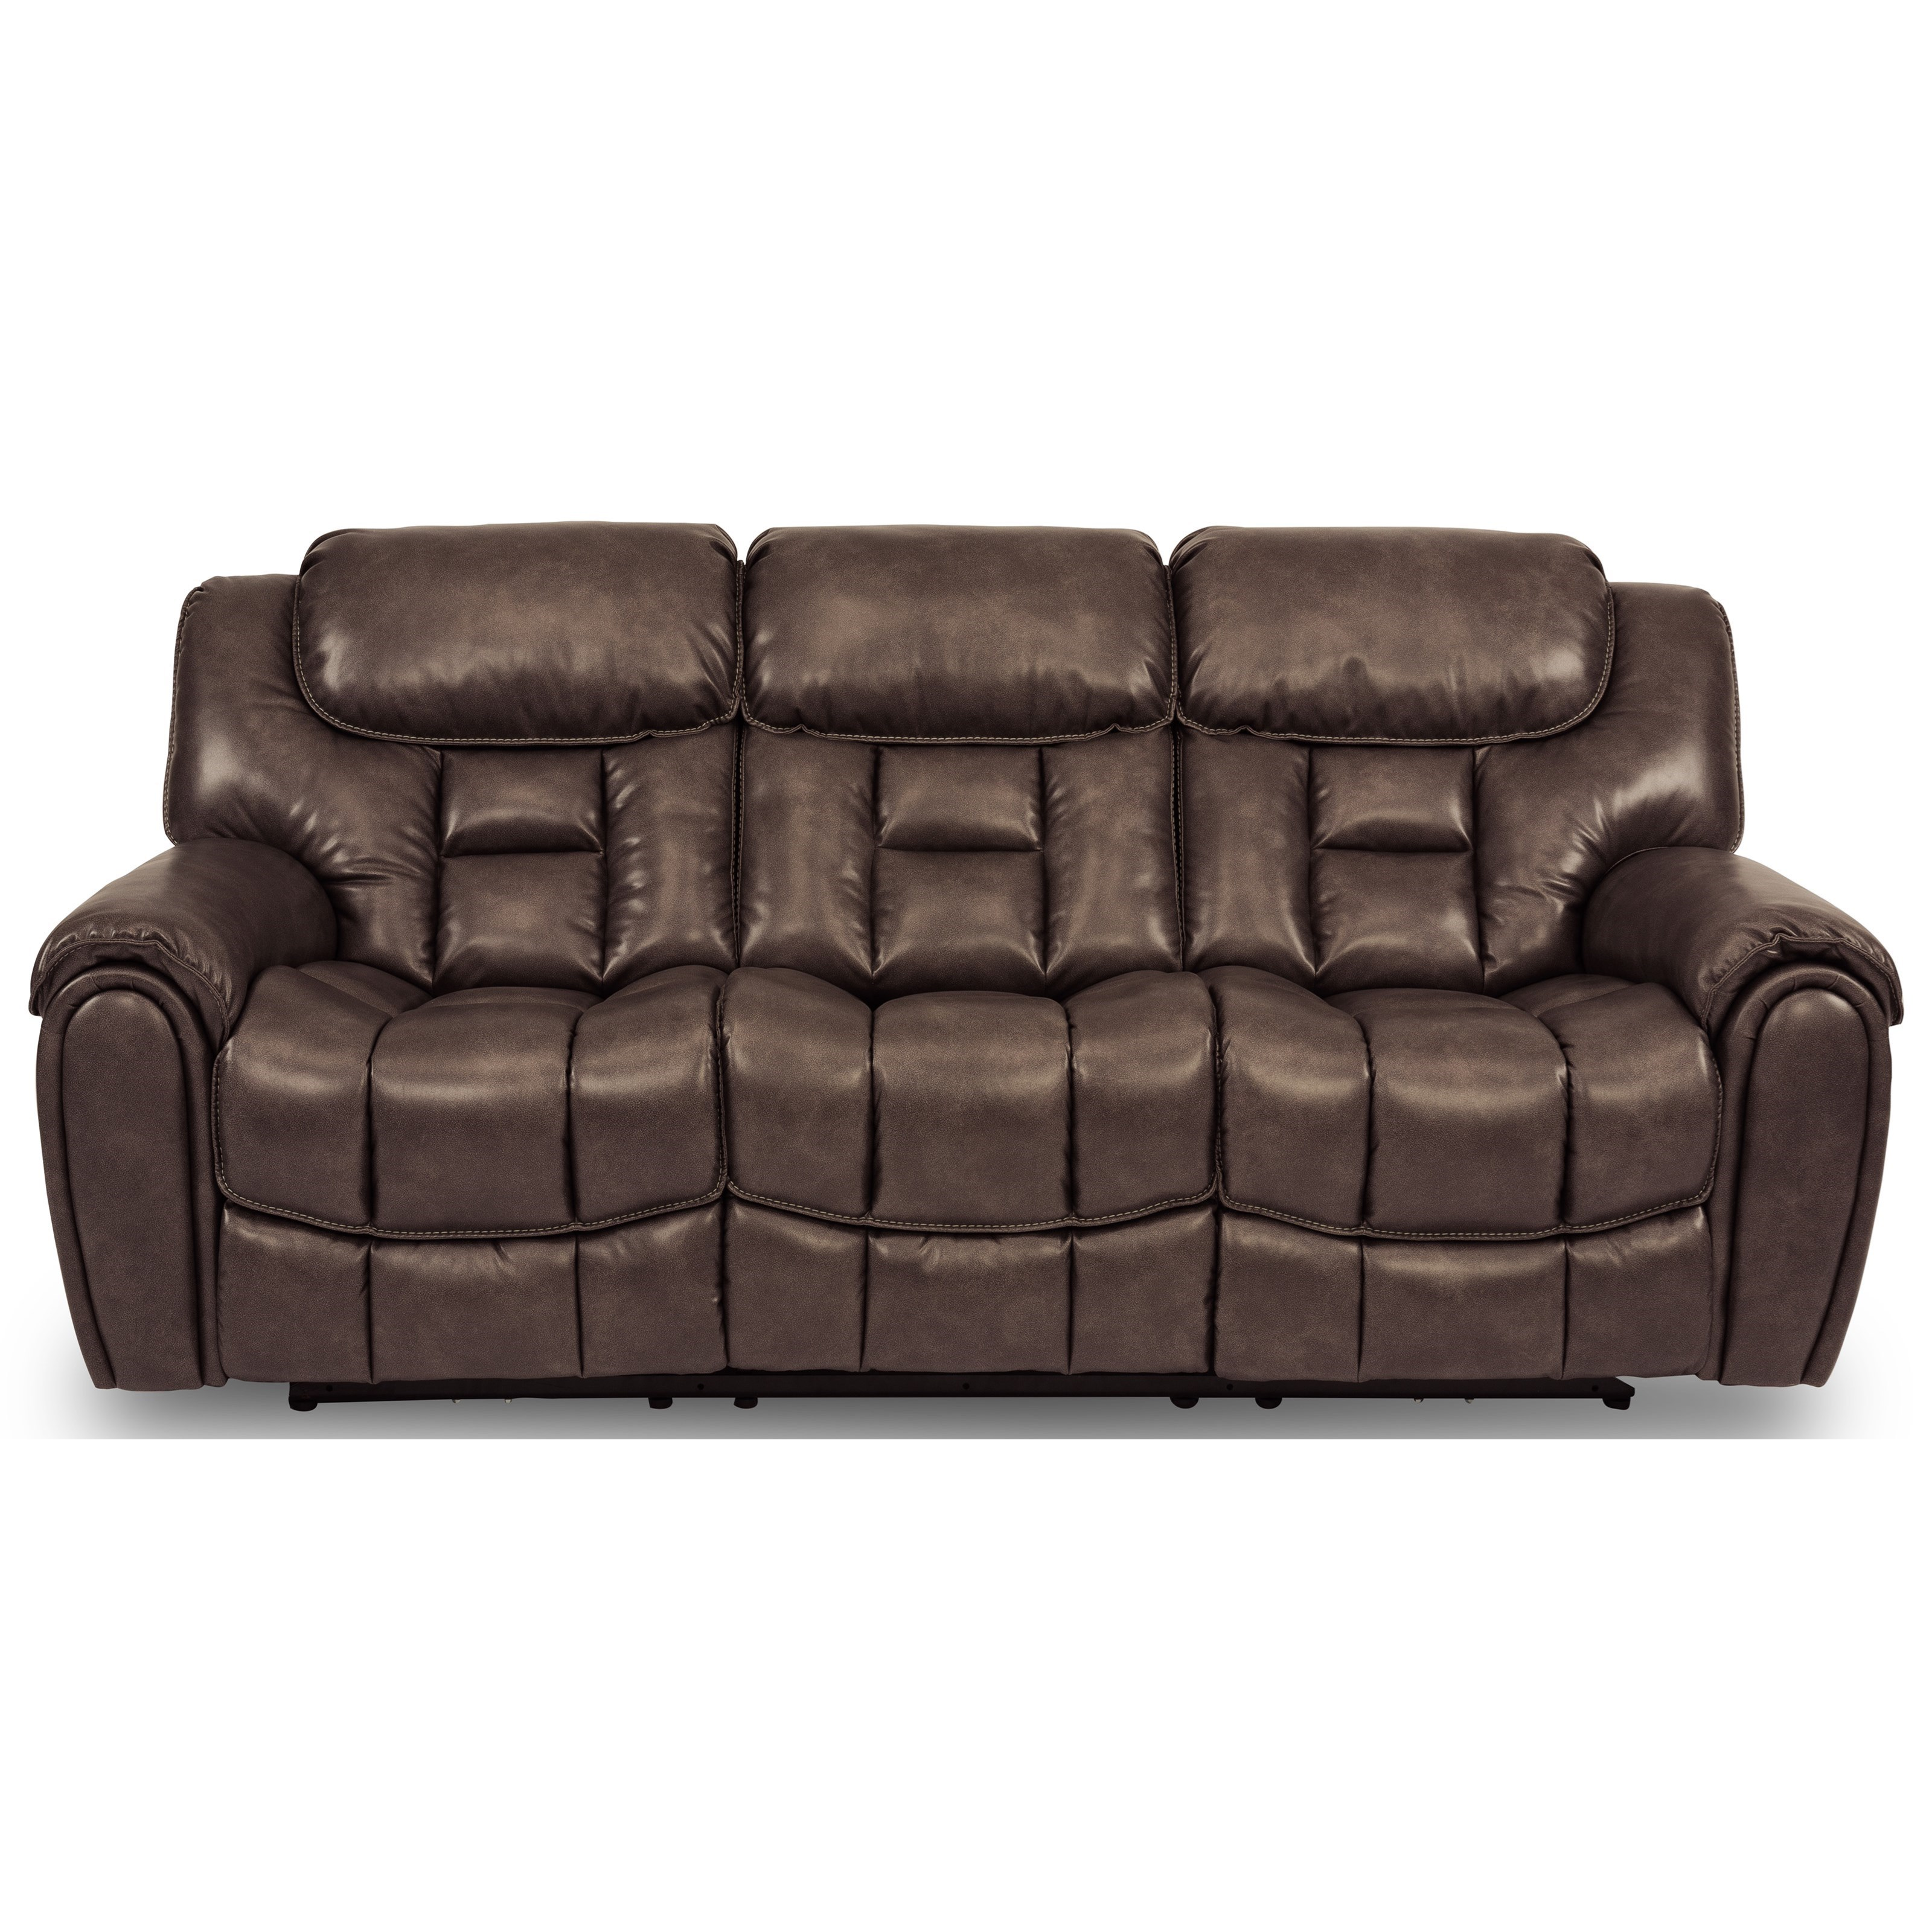 Latitudes - Buster Power Reclining Sofa by Flexsteel at Walker's Furniture